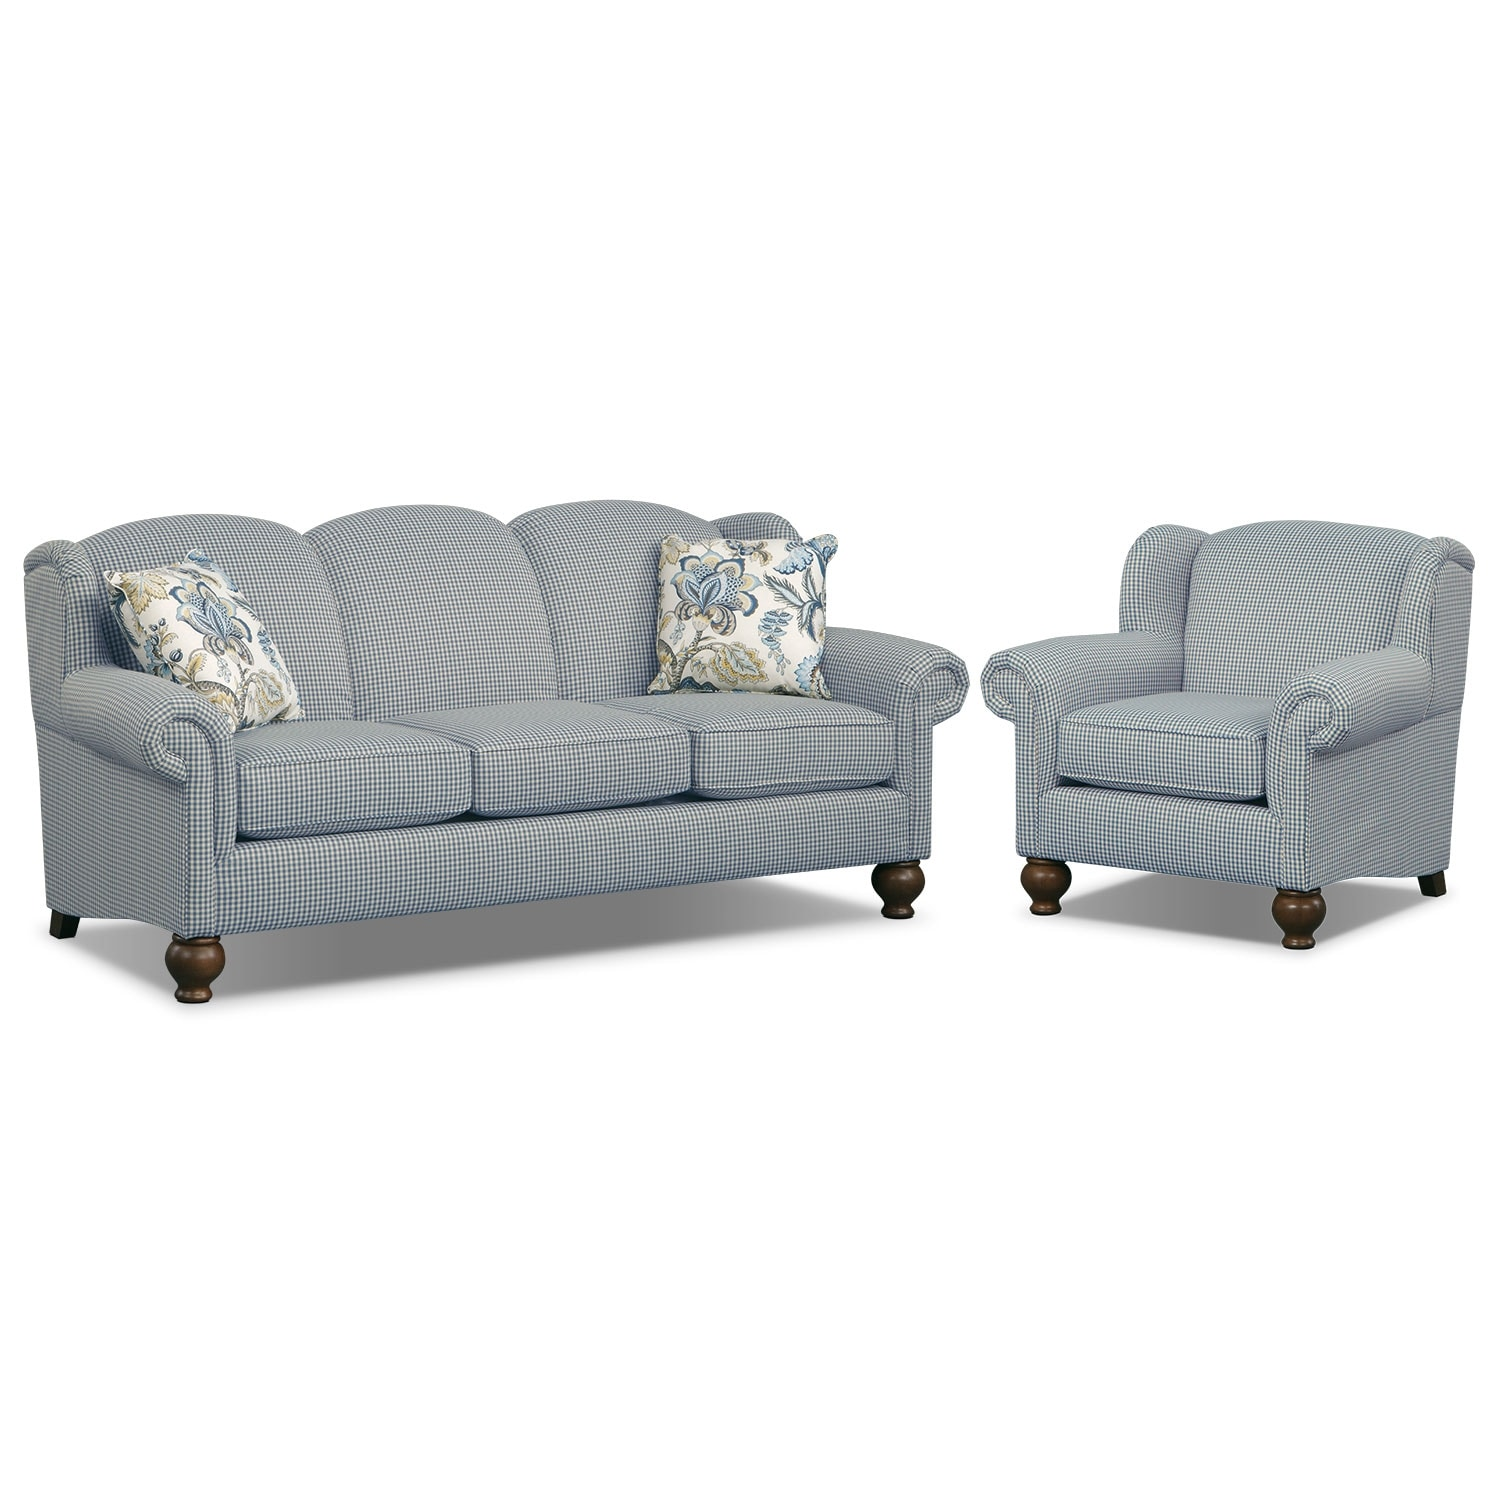 Living Room Furniture - Charlotte III 2 Pc. Living Room w/Chair